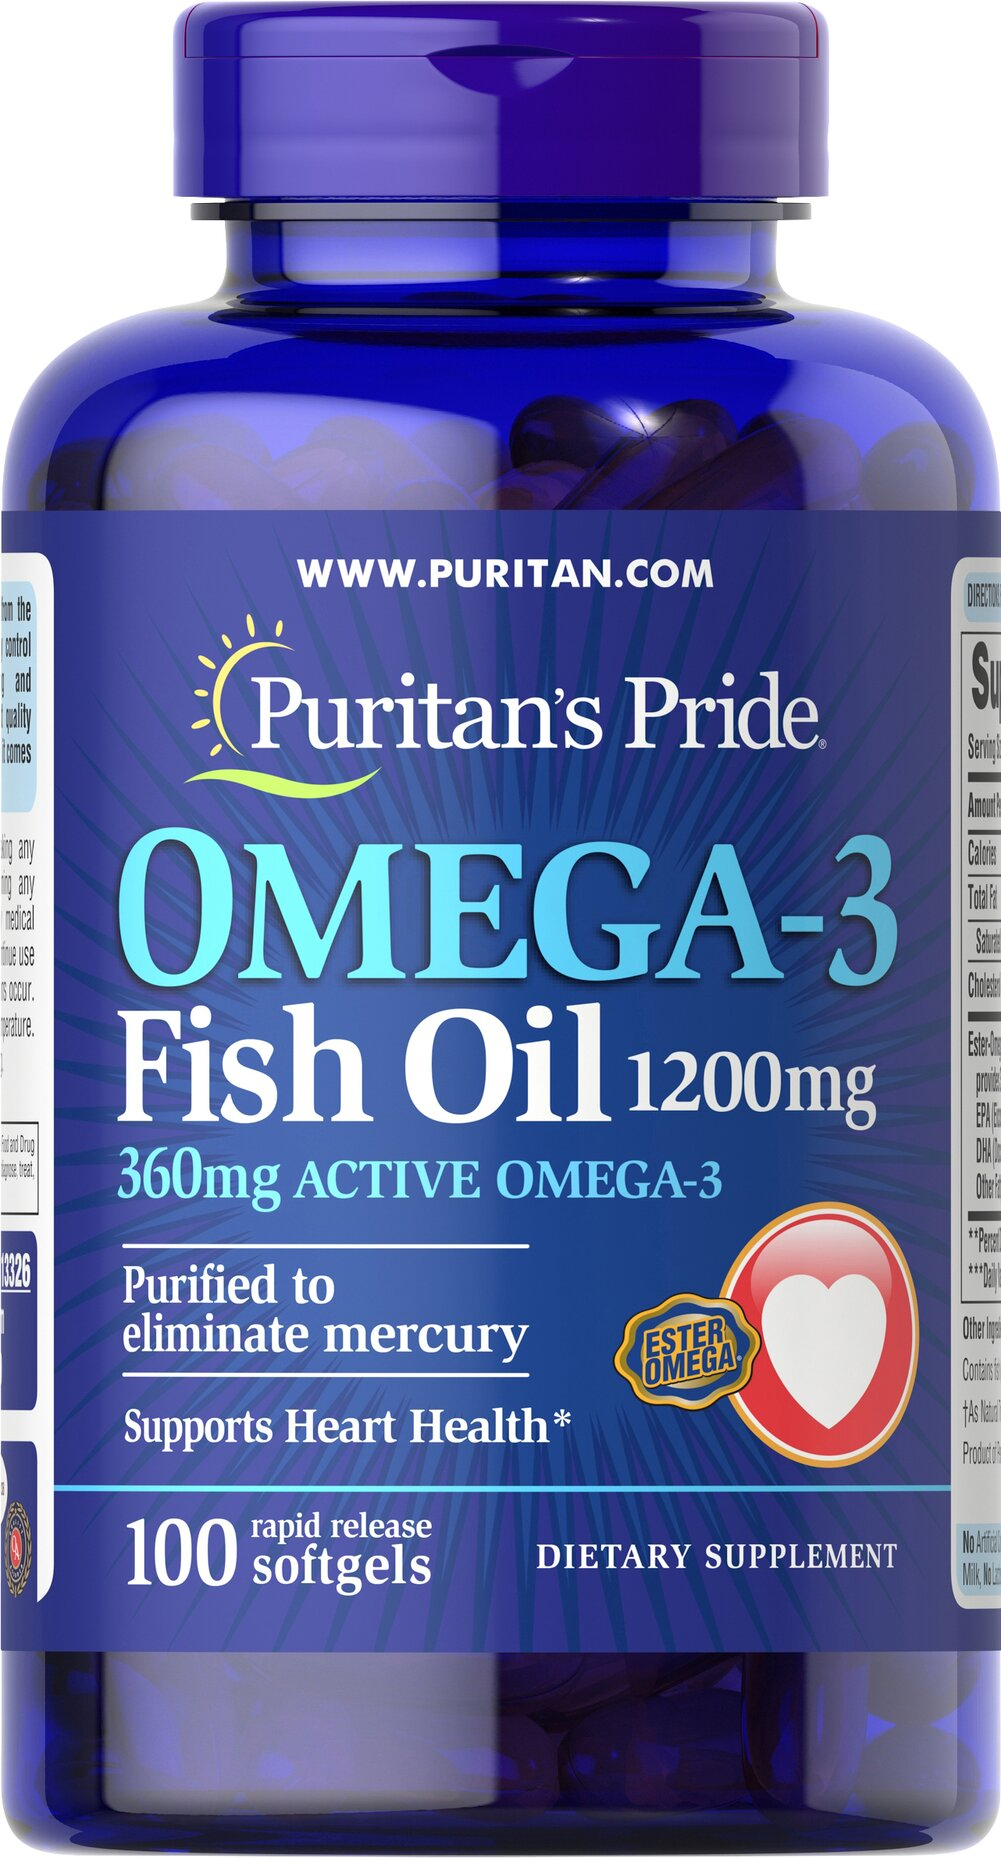 Omega-3 Fish Oil 1200 mg (360 mg Active Omega-3) <p><span></span></p>This Ester-Omega® Fish Oil provides 360mg of total omega-3 fatty acids, comprising of EPA, DHA and other fatty acids. EPA and DHA fatty acids support heart health.** Purified to eliminate mercury. Rapid release softgels. 100 Softgels 1200 mg $10.70